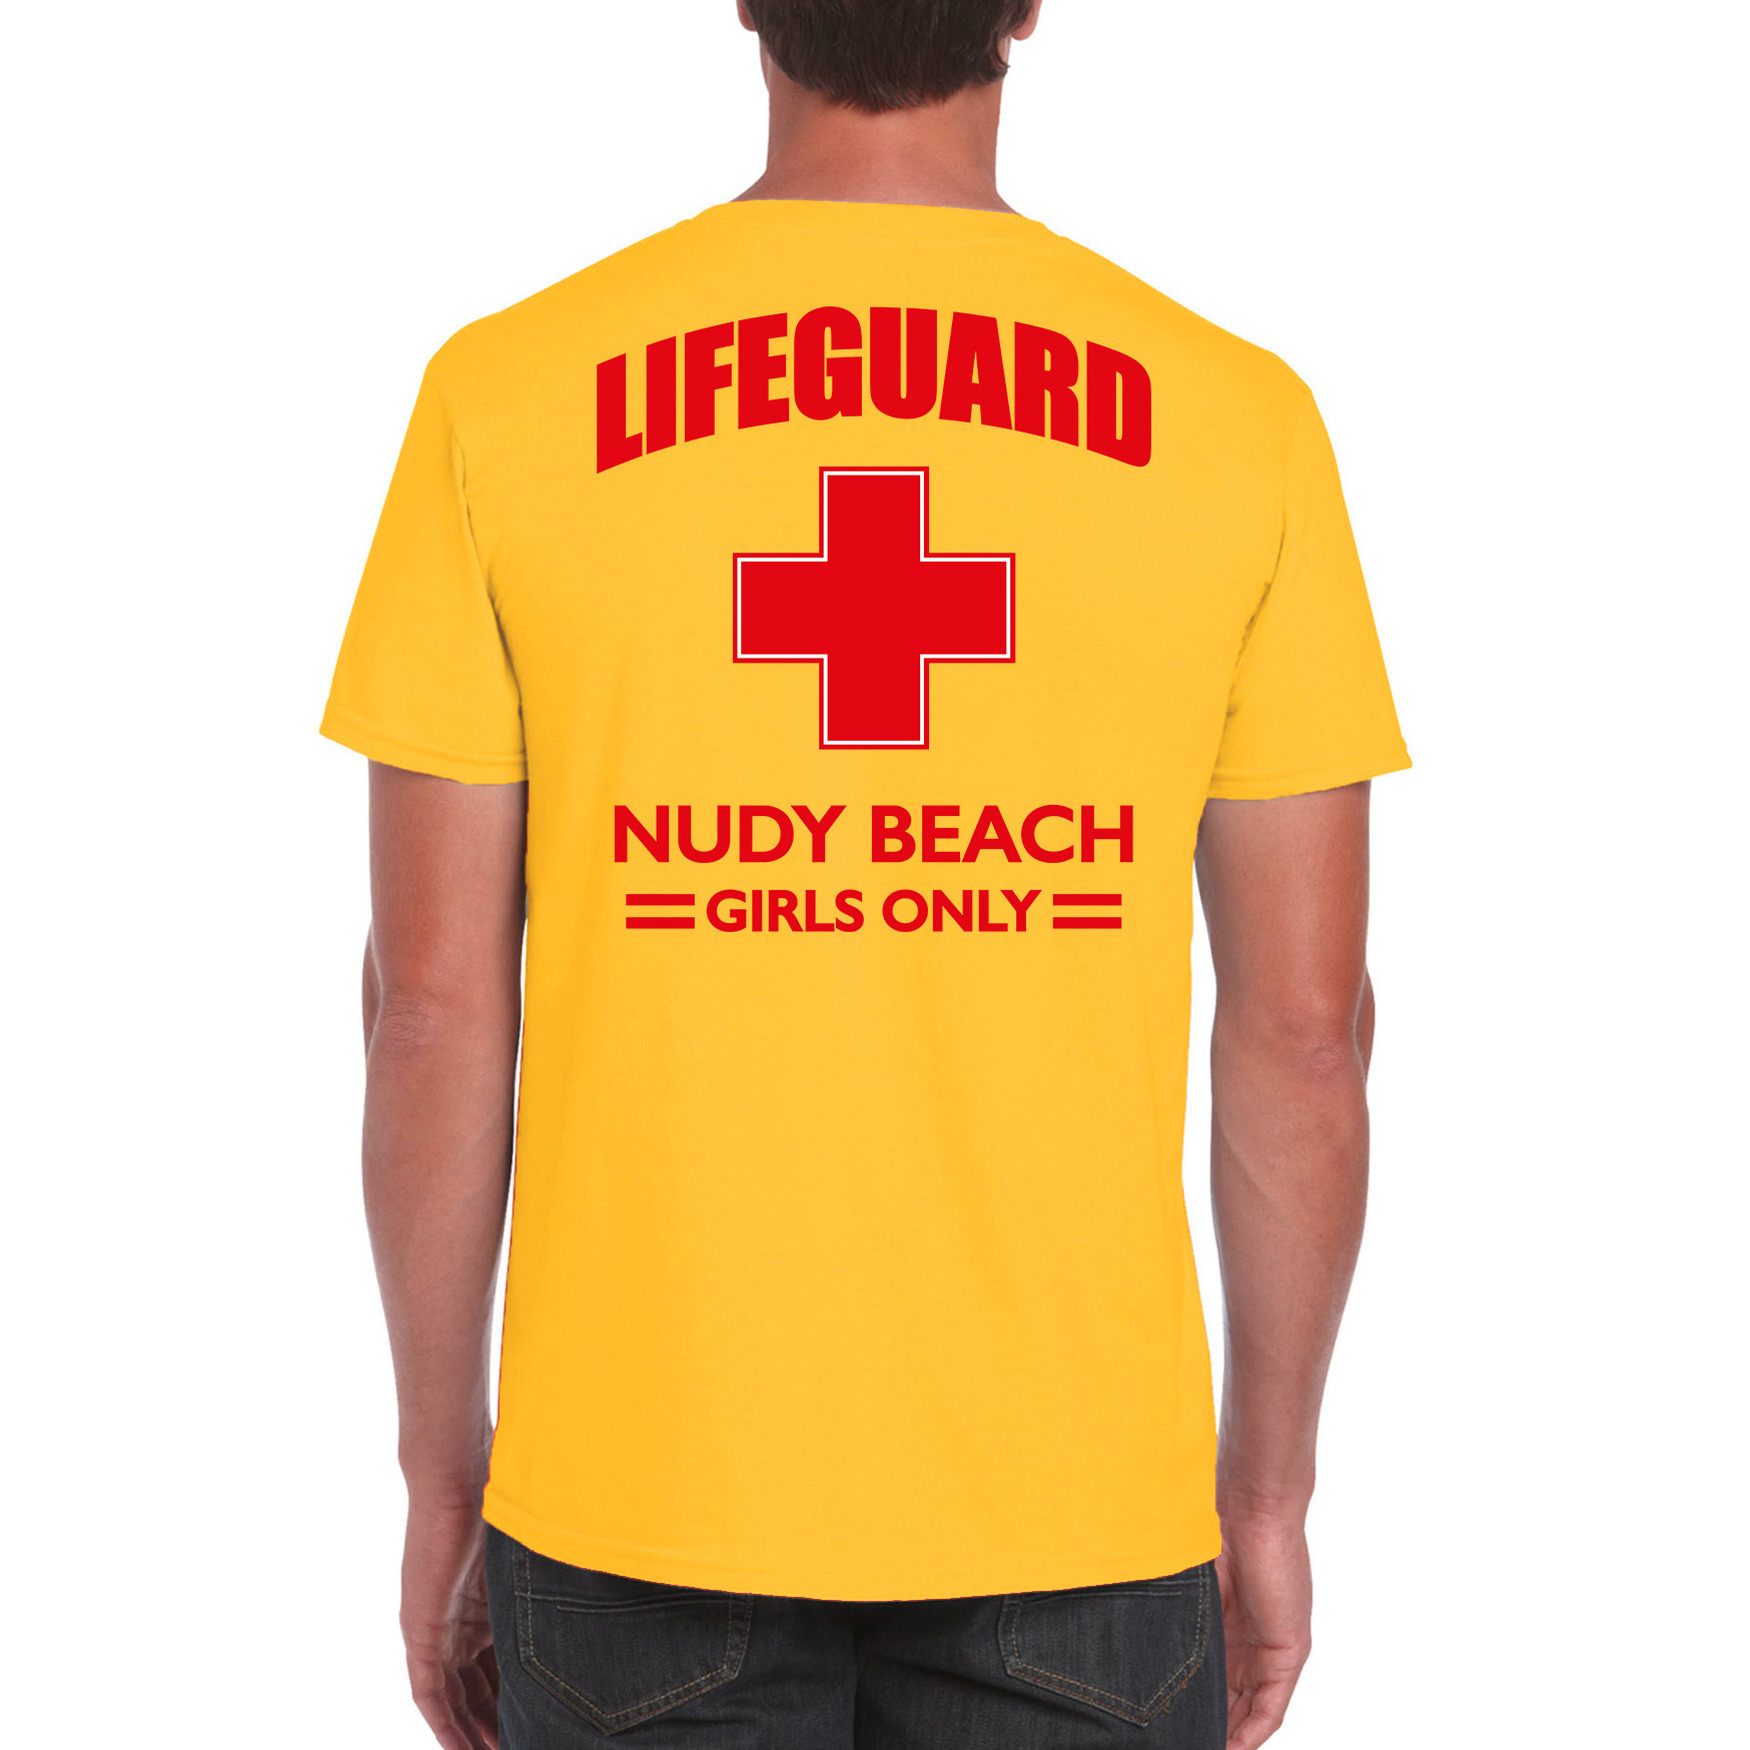 Lifeguard- strandwacht verkleed t-shirt-shirt Lifeguard Nudy Beach girls only geel voor heren